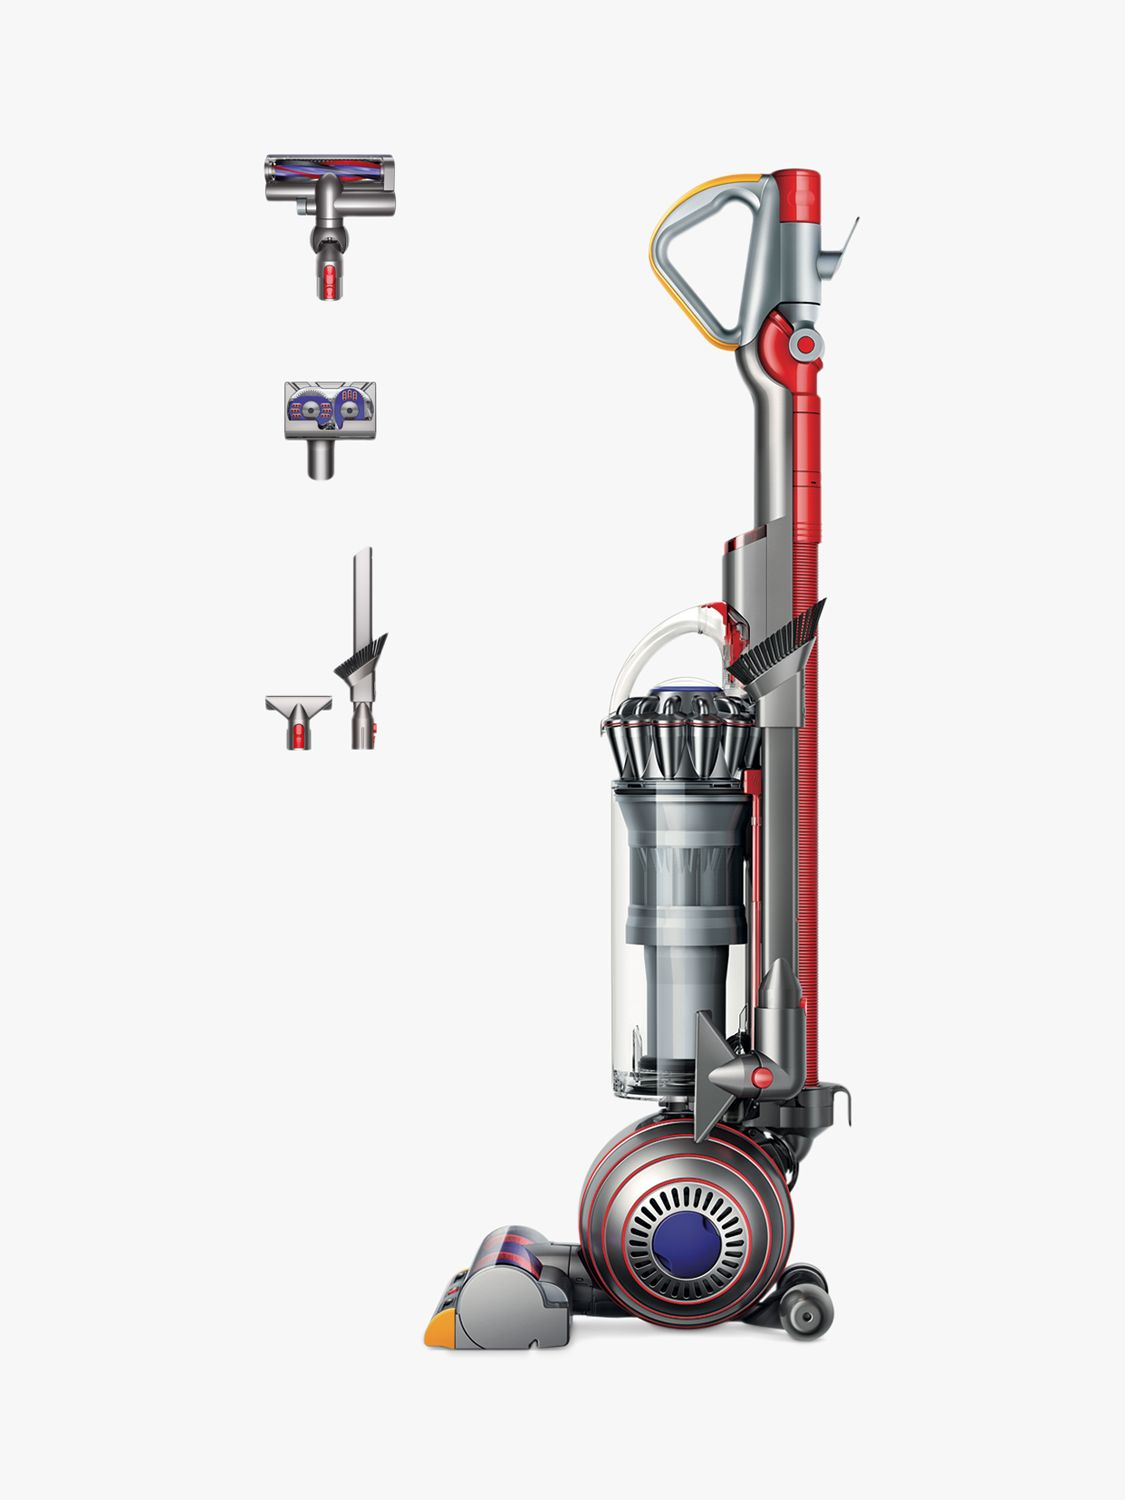 Dyson Dyson UP24 Ball Animal 2 Upright Vacuum Cleaner